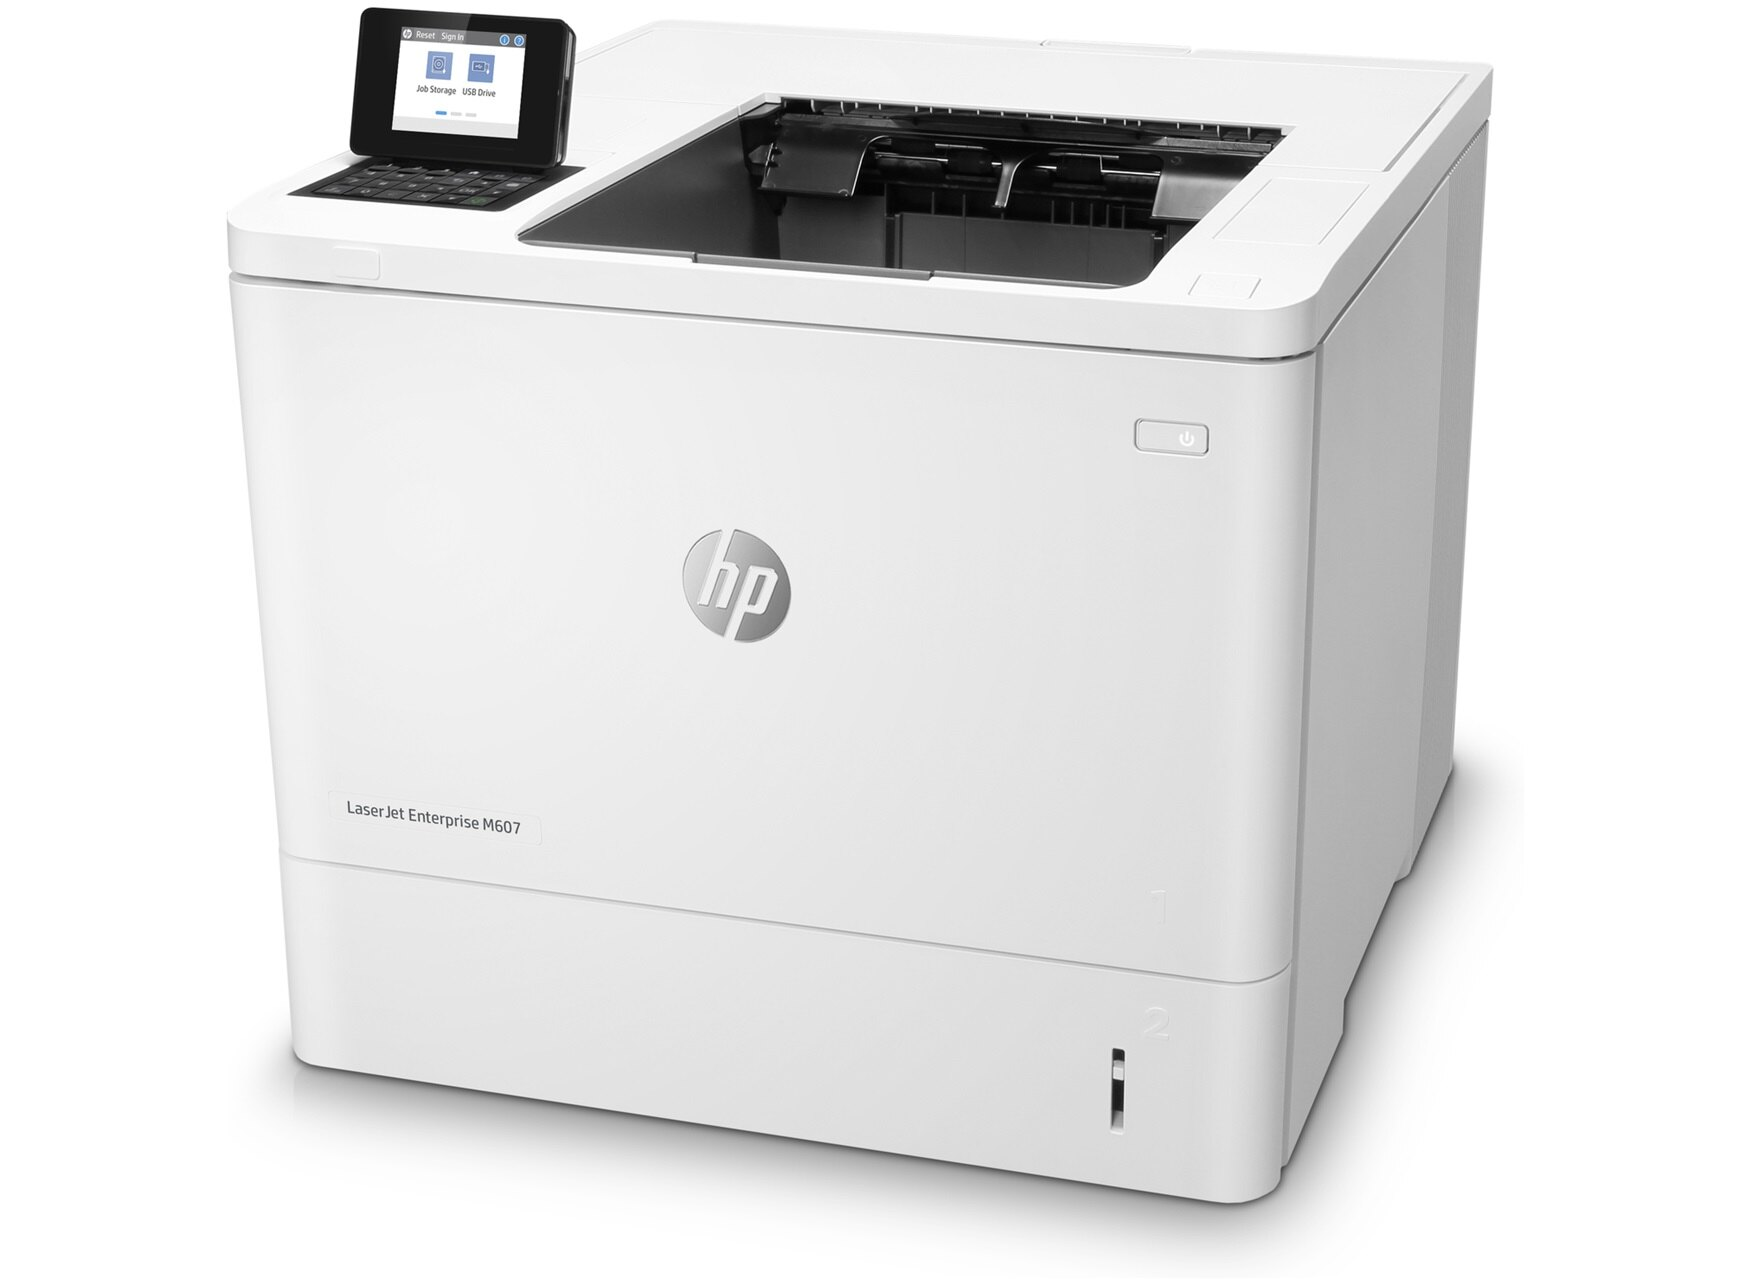 HP LaserJet Enterprise M607dn Printer 單功能雷射印表機